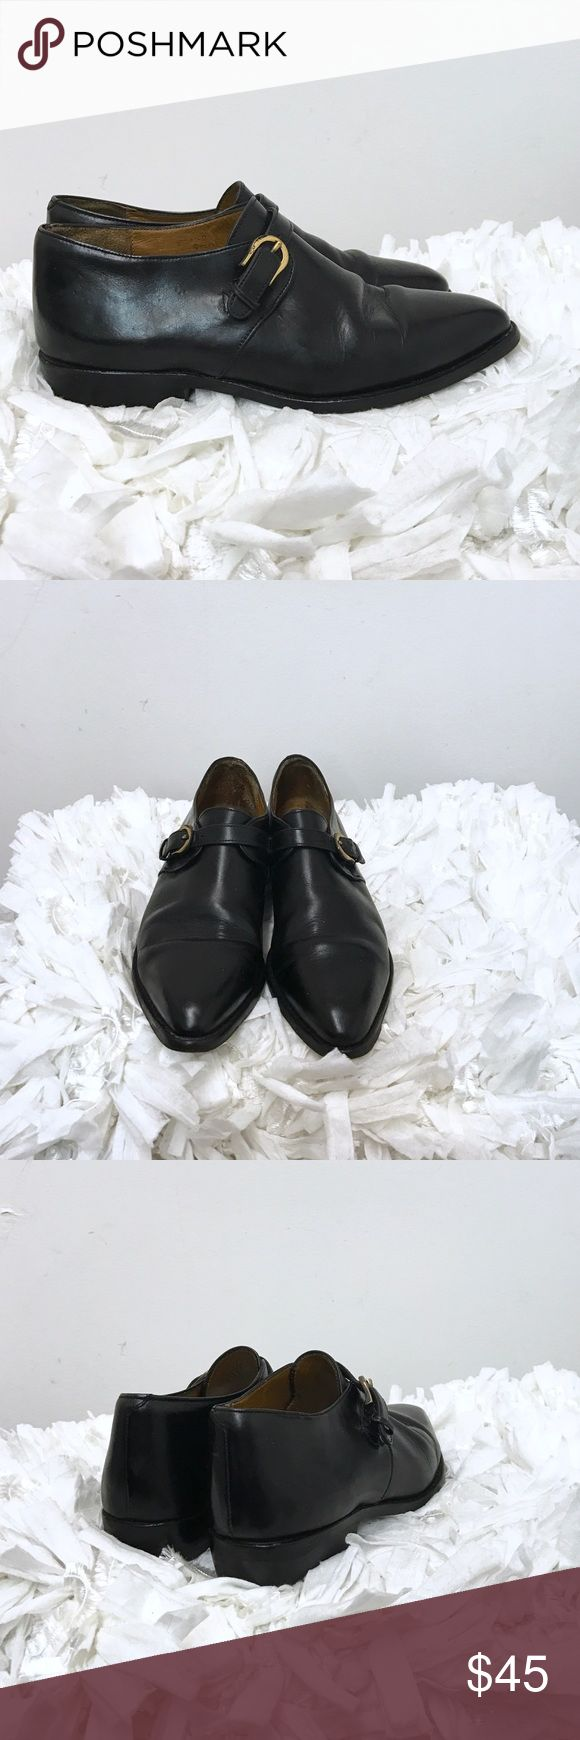 Cole Haan ankle booties Sz 7 Cole Haan ankle booties. Sz 7B. Good condition. Some normal wear. Some creasing. Cole Haan Shoes Ankle Boots & Booties